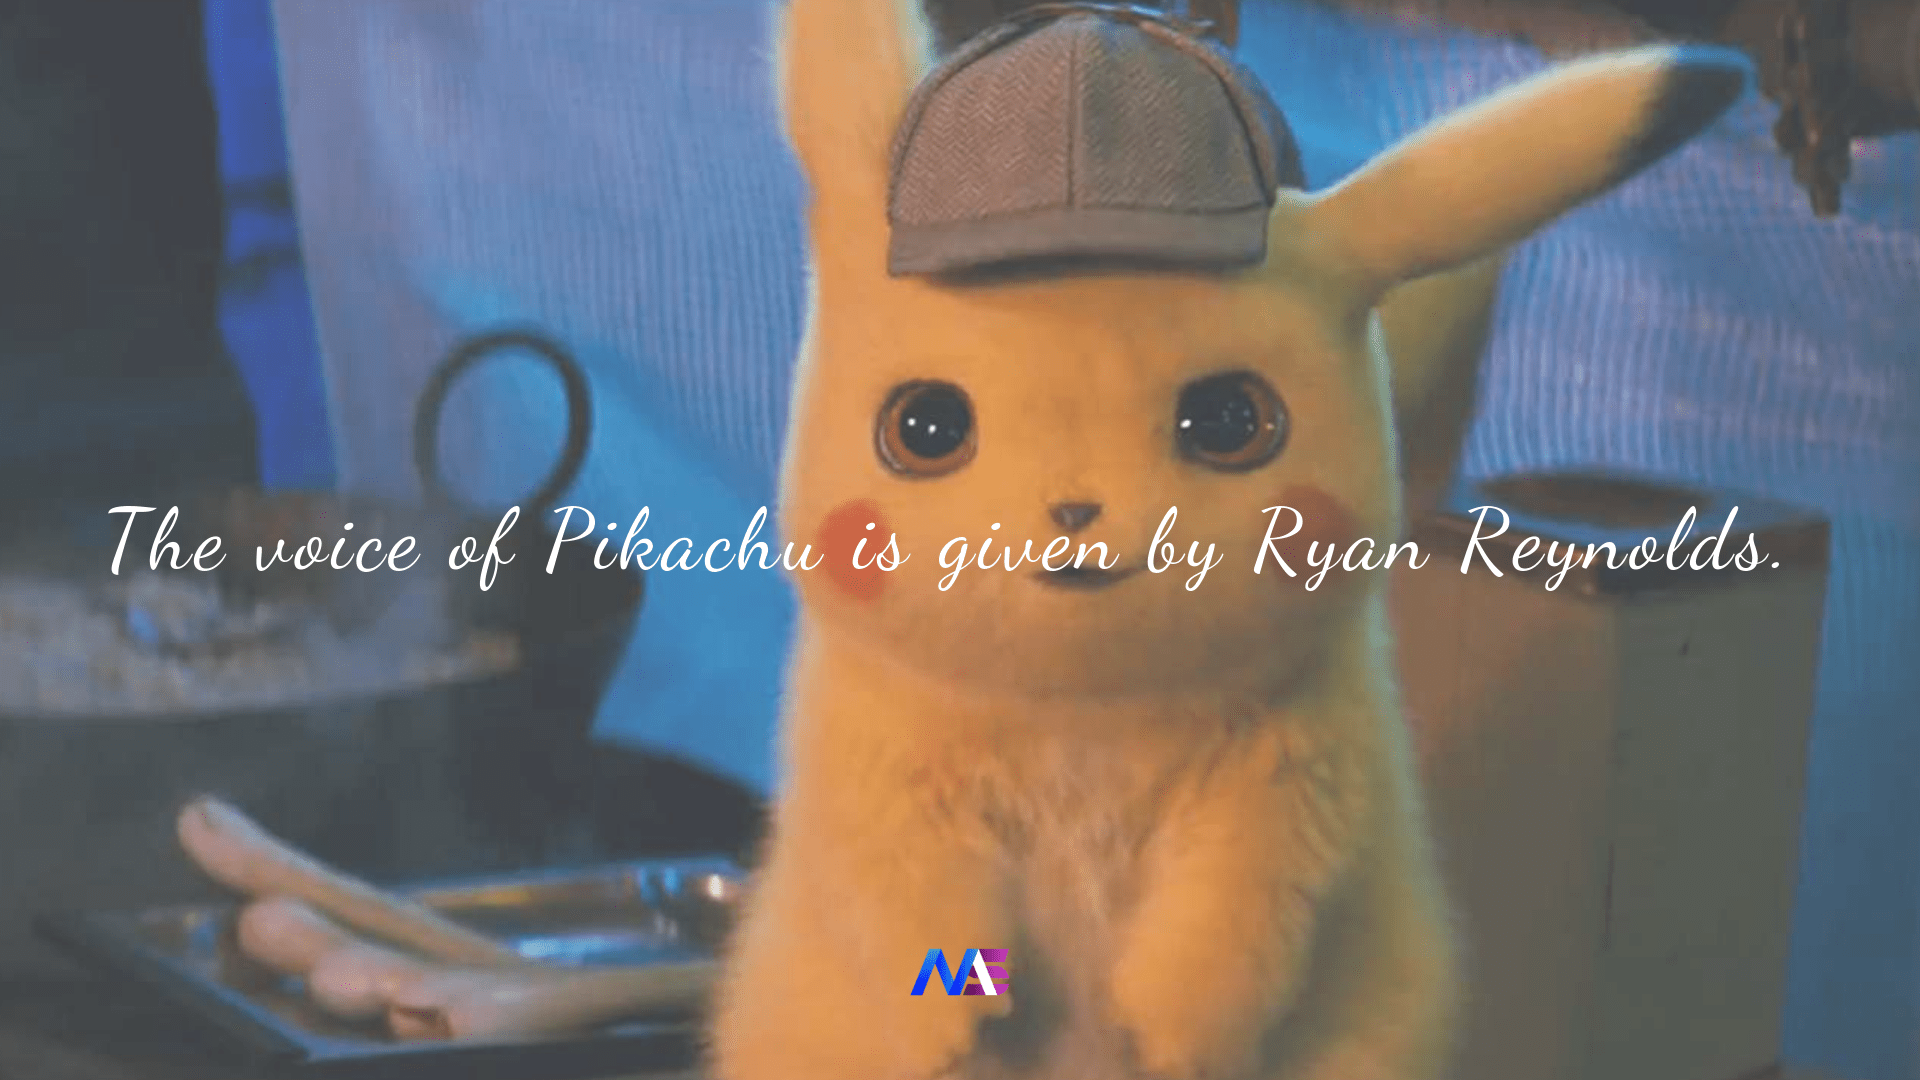 "Ryan Reynolds is coming as 'Detective Pikachu"" and we couldn't be more excited."